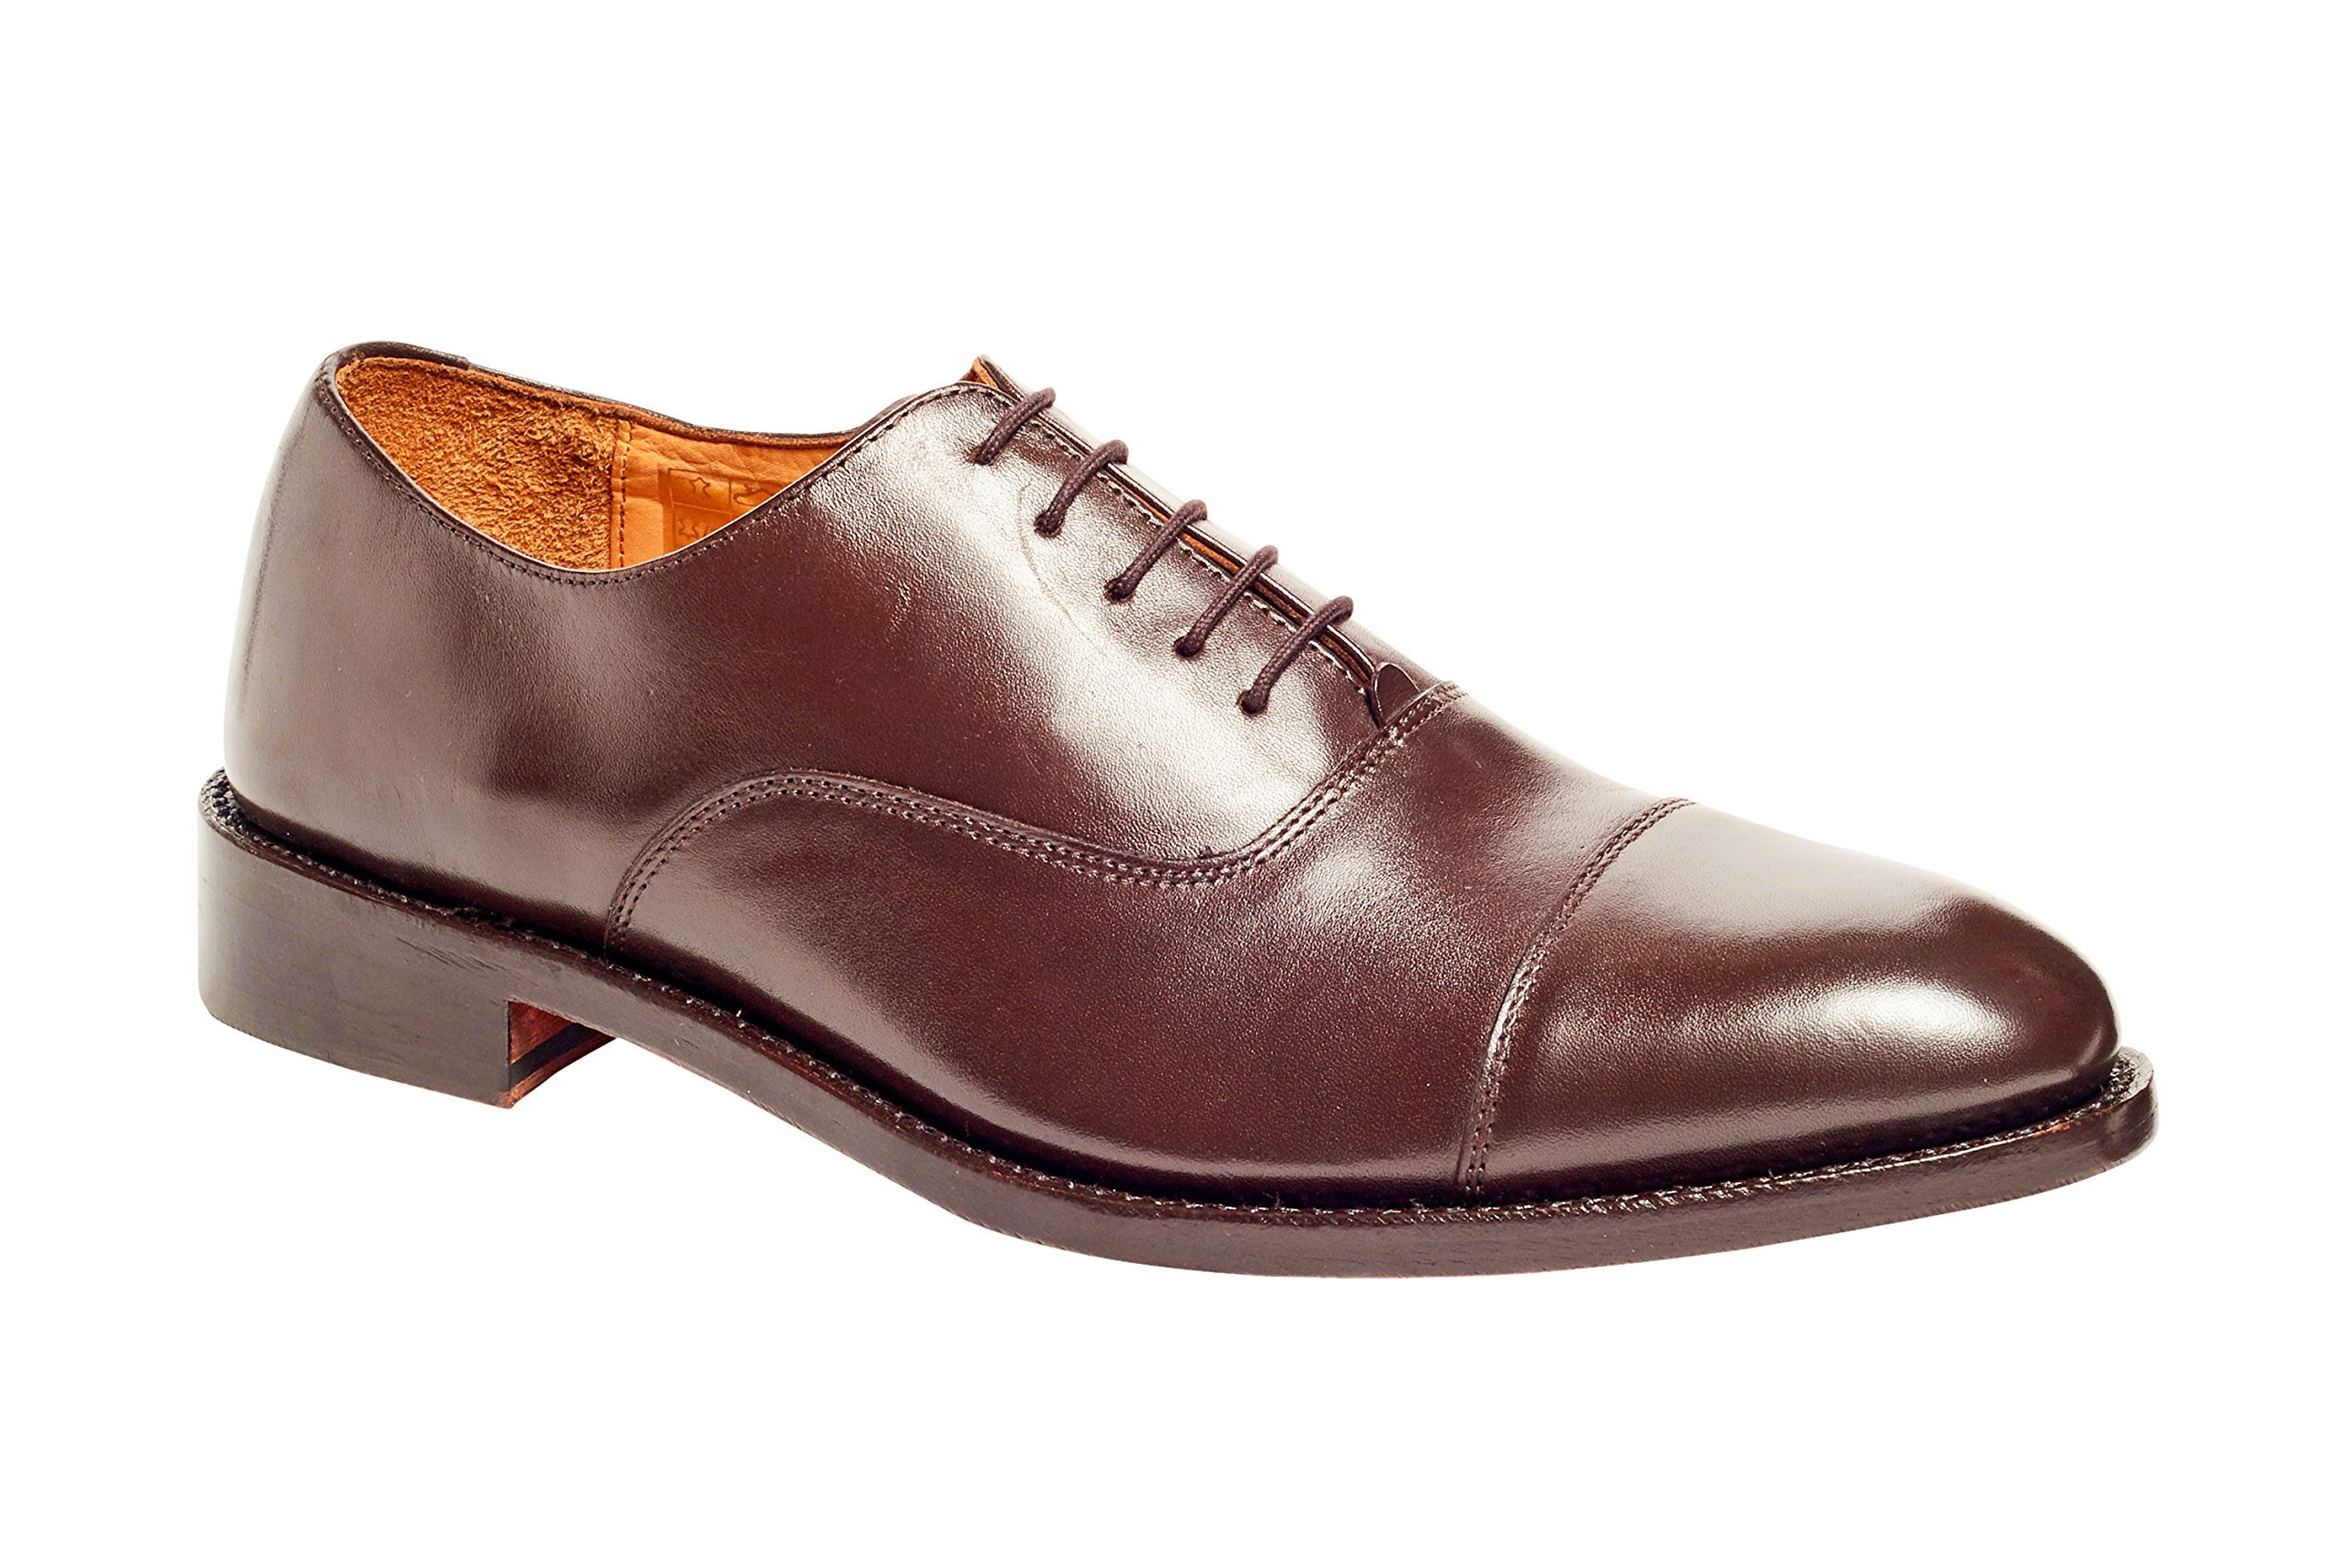 Anthony Veer Mens Clinton Cap-Toe Oxford Leather Shoe In Goodyear Welted Construction (10 D, Brown)